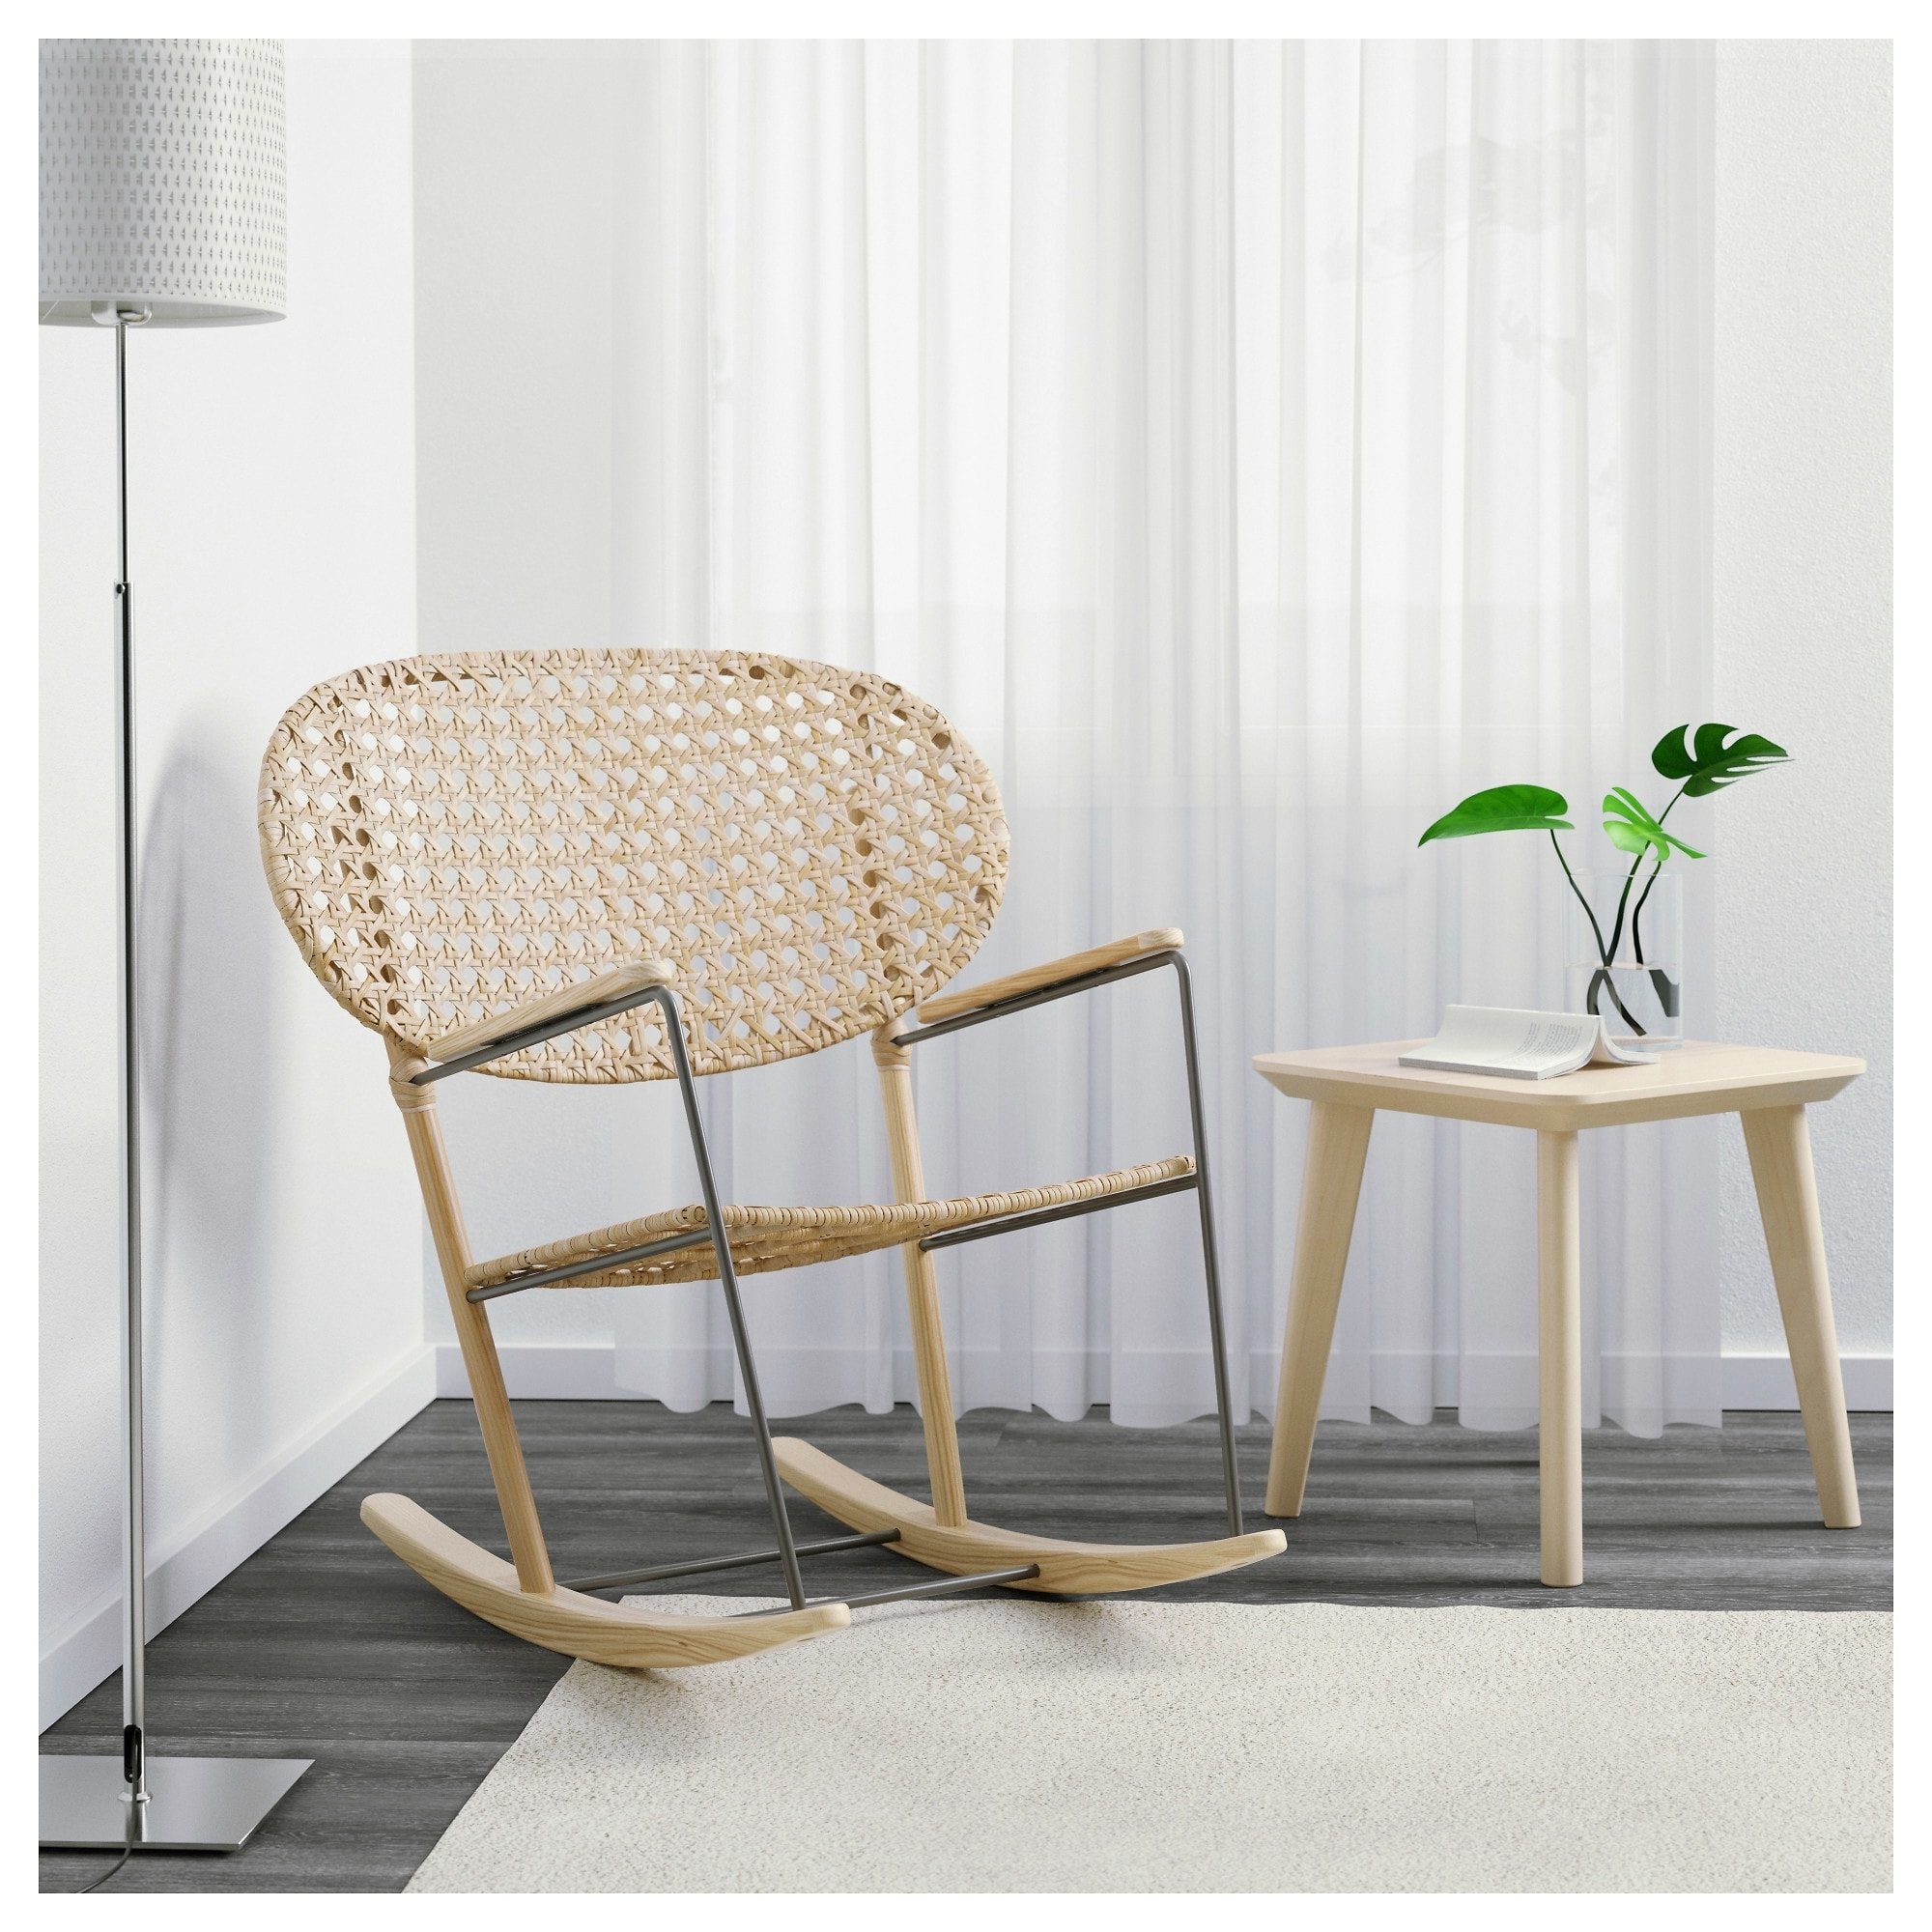 Ikea Rocking Chairs For Fashionable Grönadal Rocking Chair – Ikea (View 5 of 15)